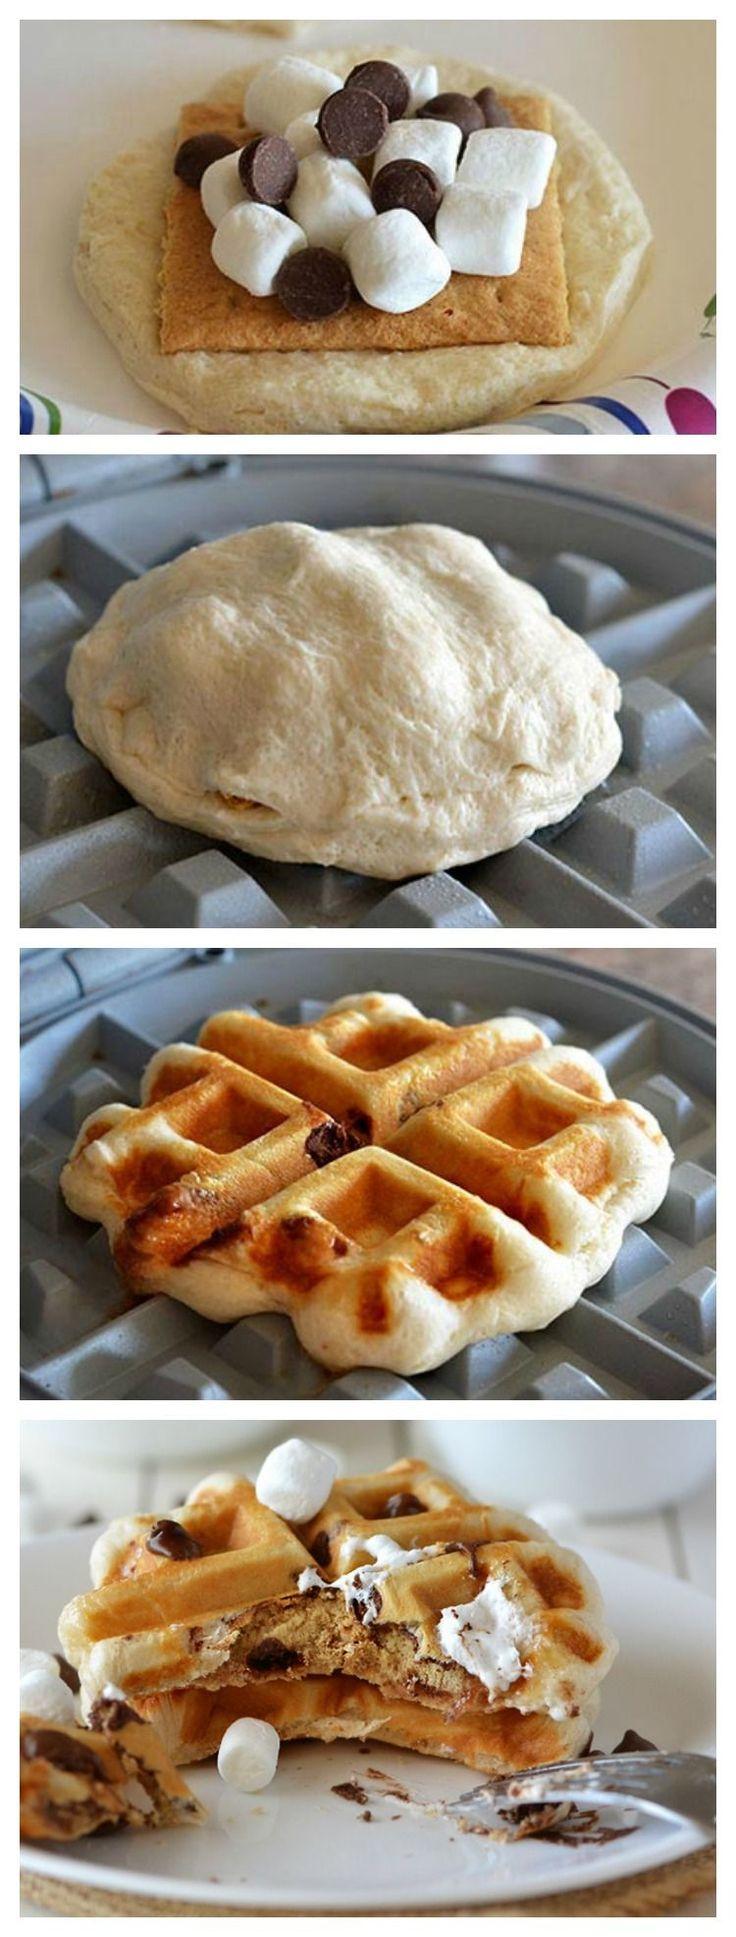 Satisfy s'mores cravings any time with your waffle maker and four ingredients you probably have already! #osterkicthen #waffles